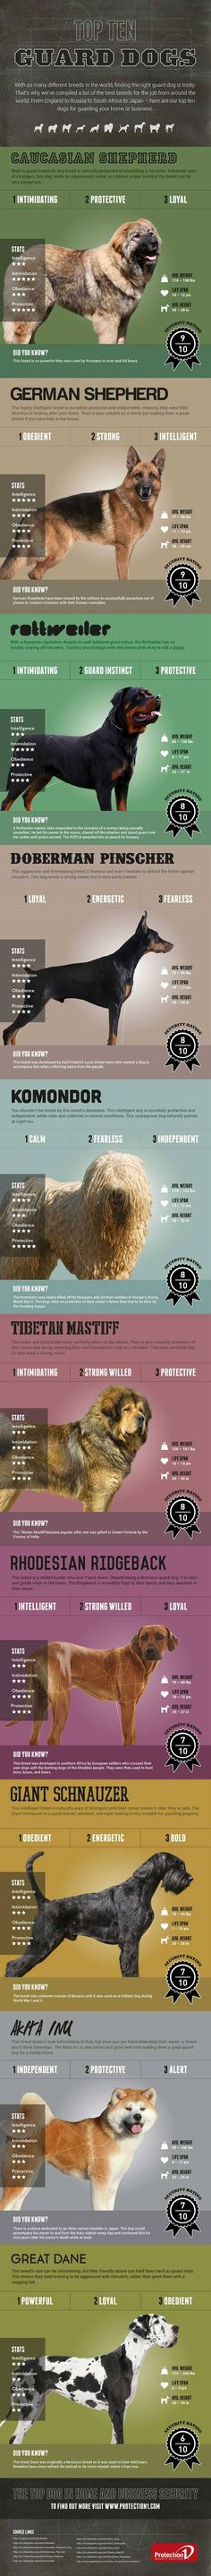 The World's Top Ten Guard Dogs Infographic